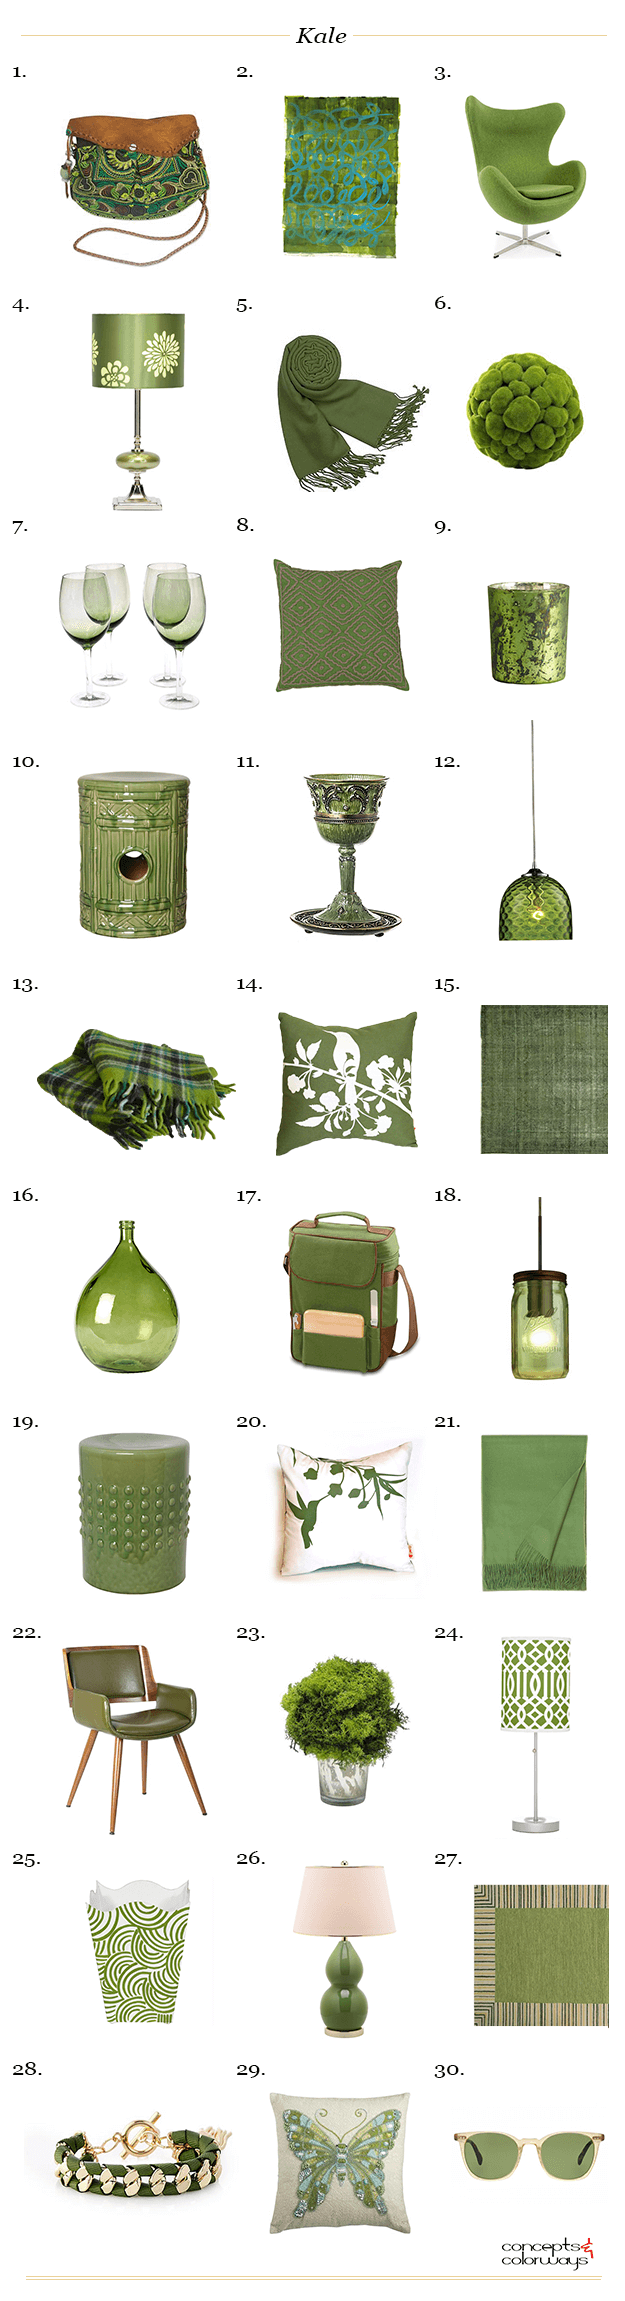 Pantone kale concepts and colorways for Sustainable interior design products